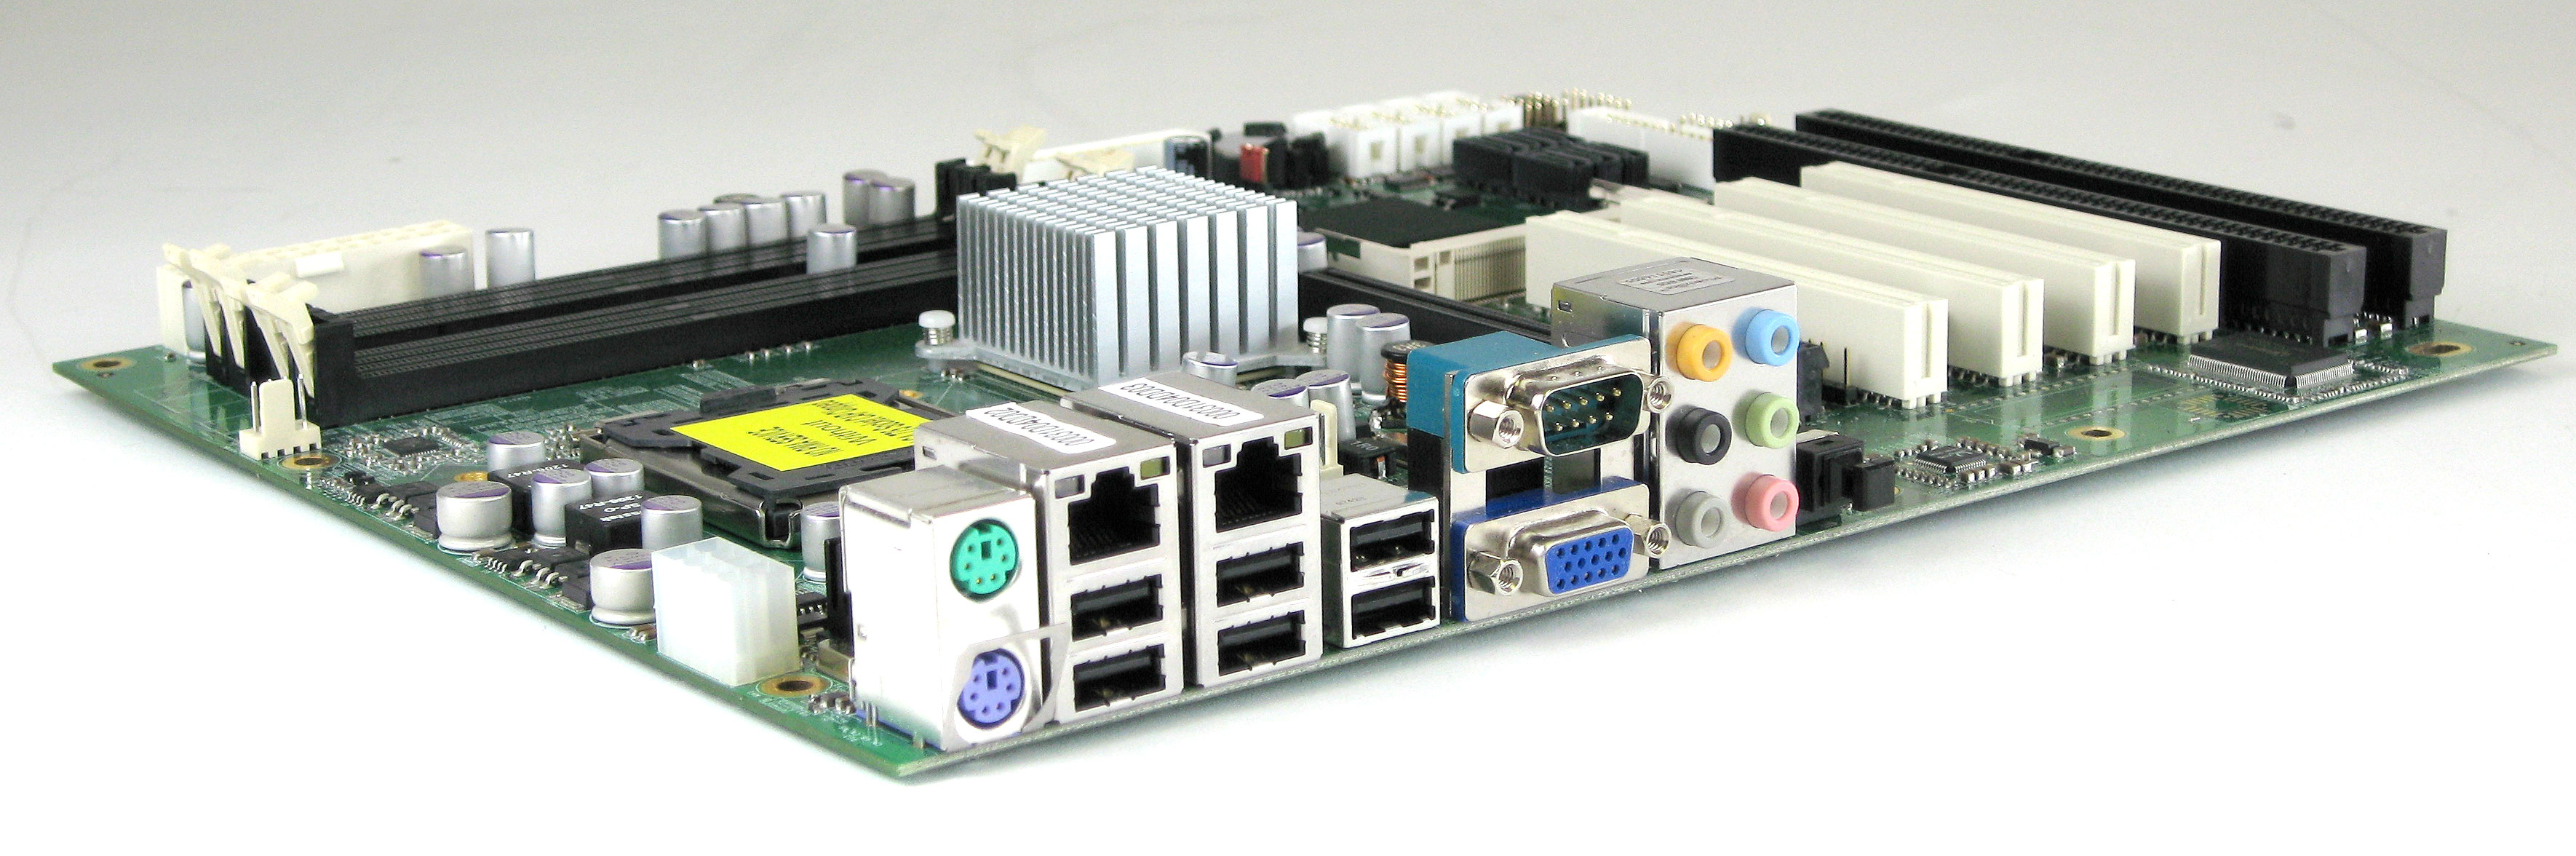 P4BWA Industrial Motherboard Rear Panel